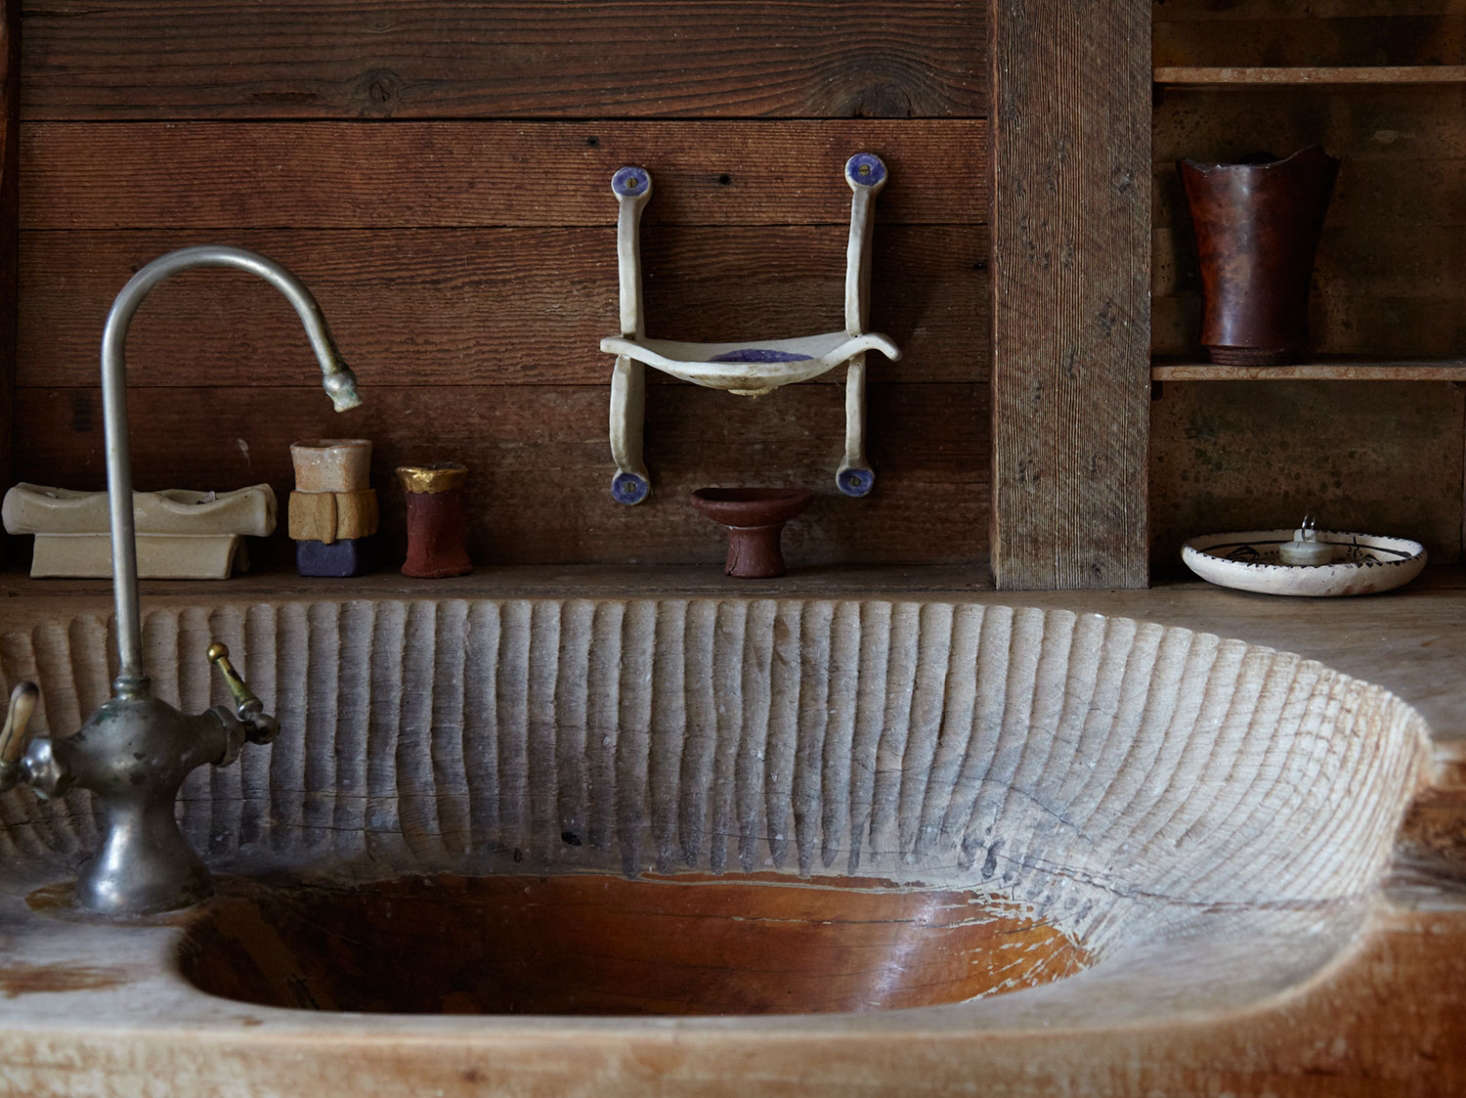 Blunk's hand-hewn bathroom sink, with marks from his chisel.